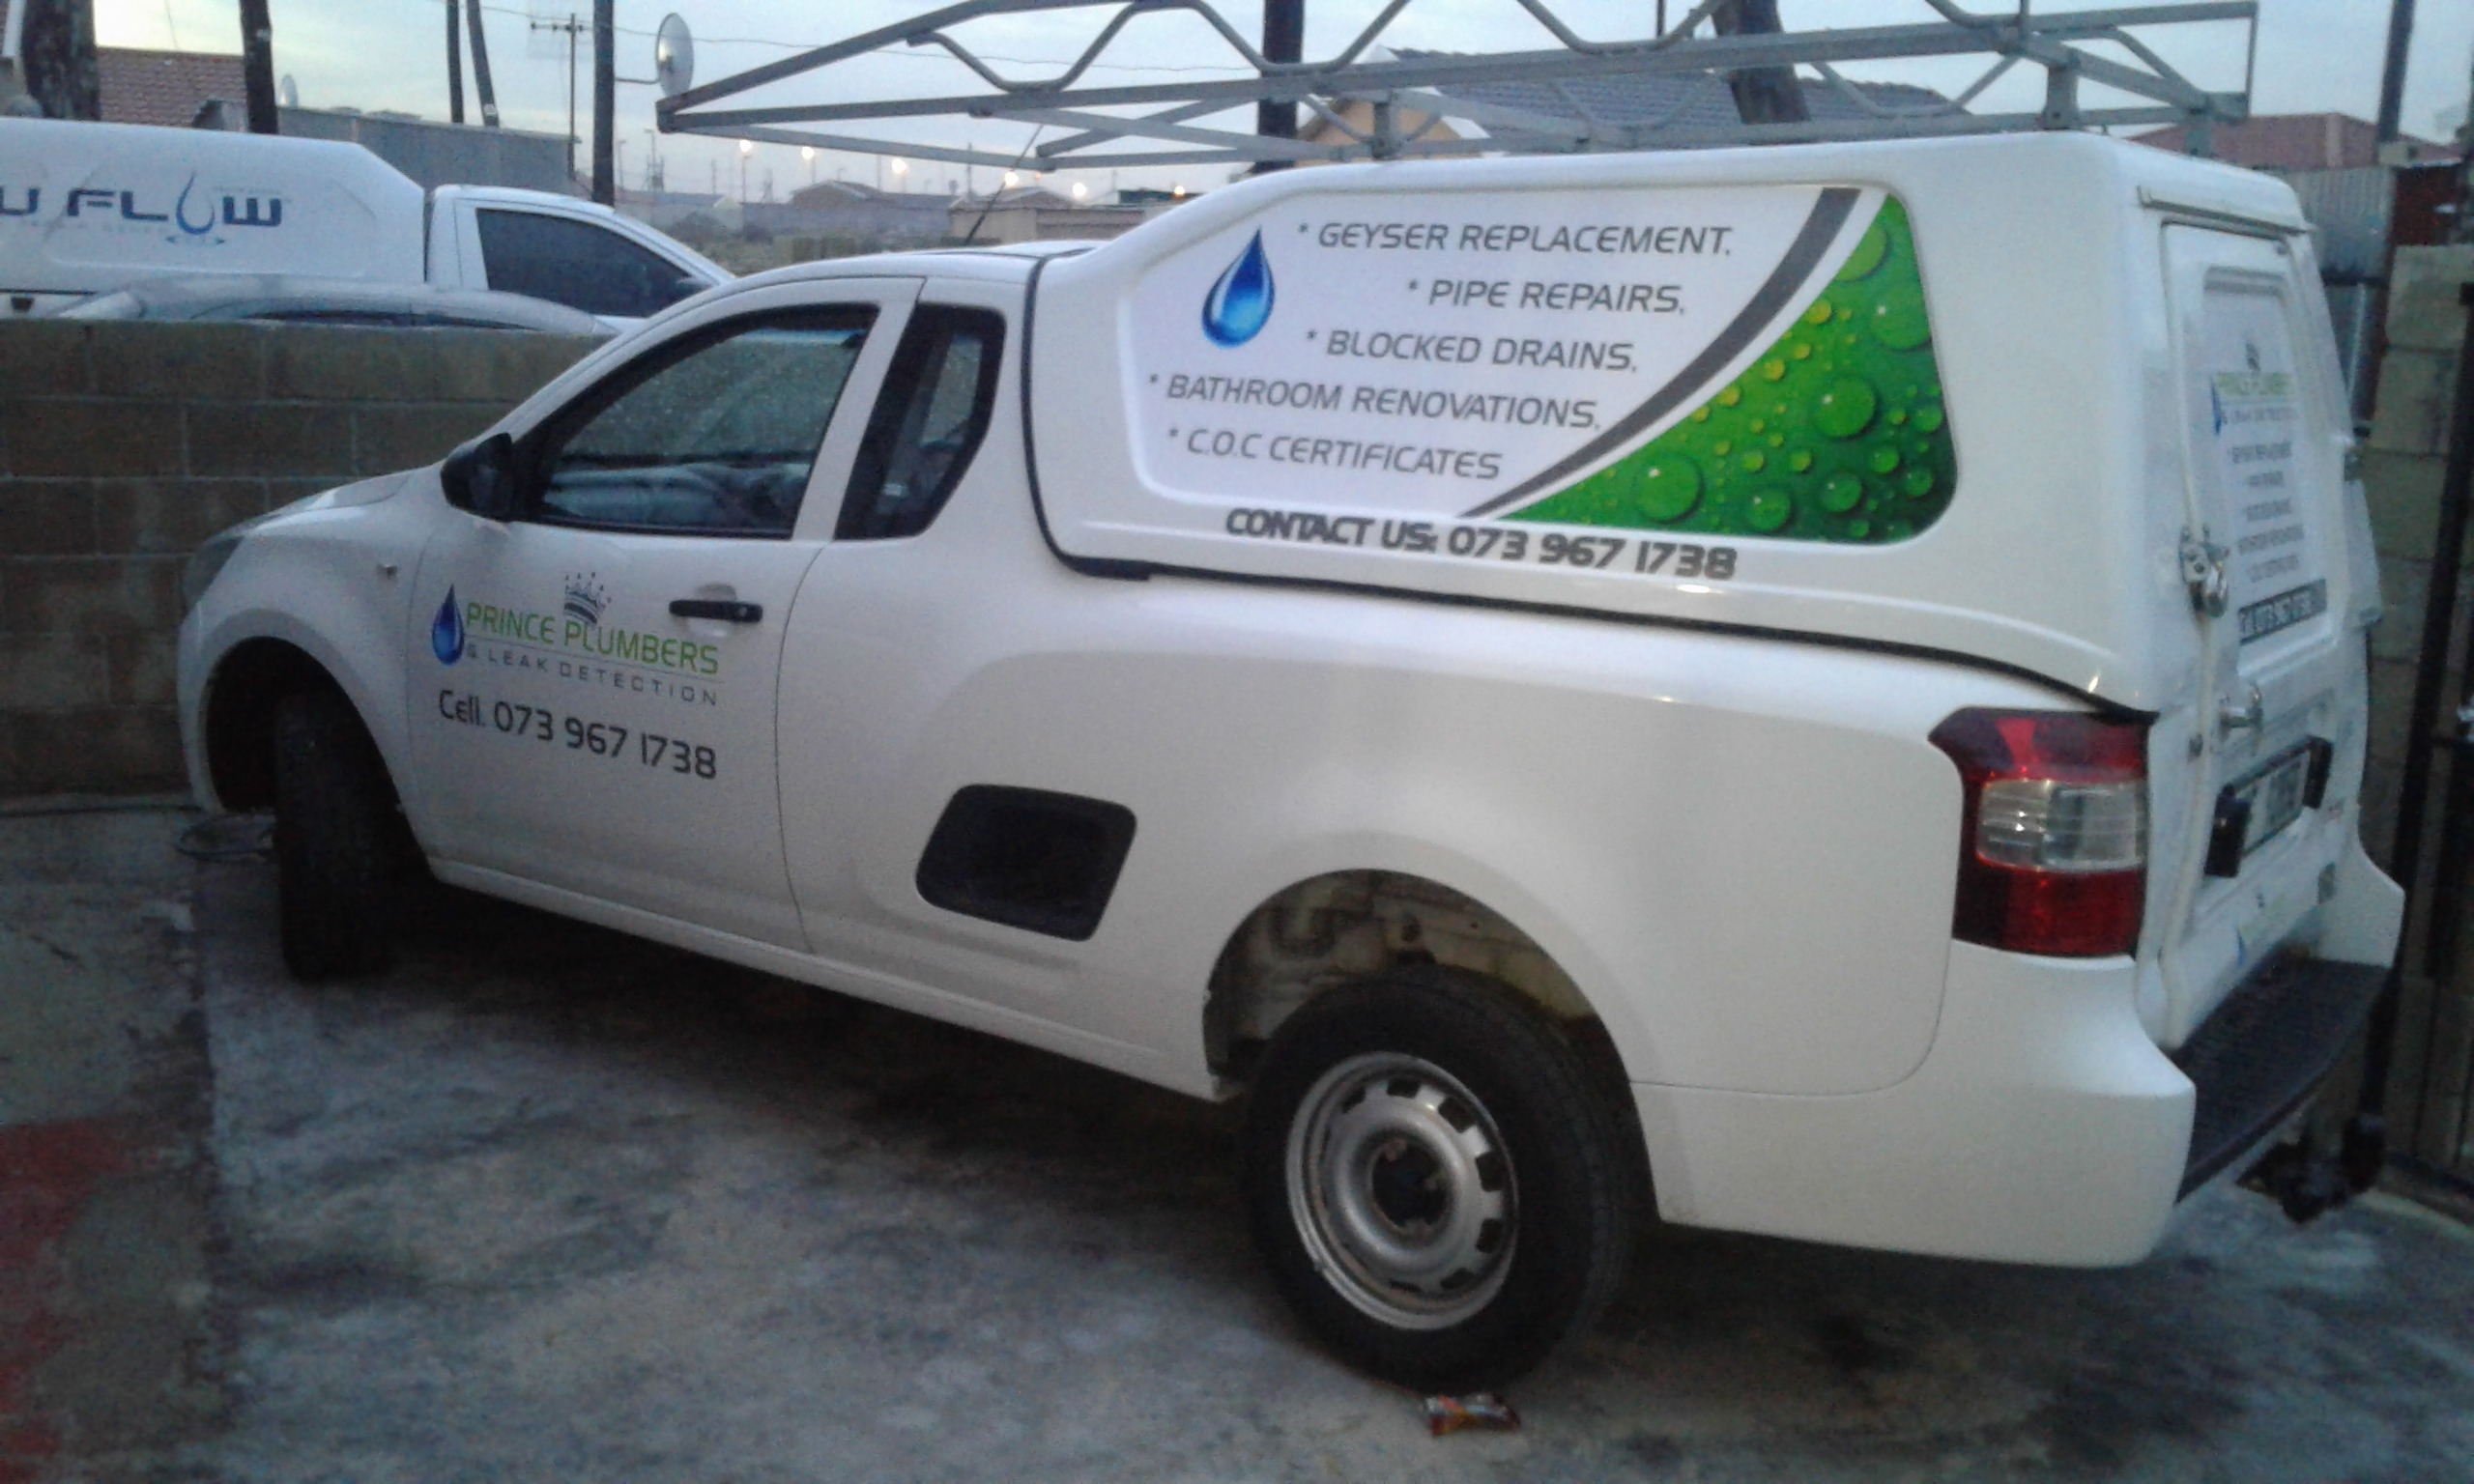 Prince Plumbing & Leak Detection